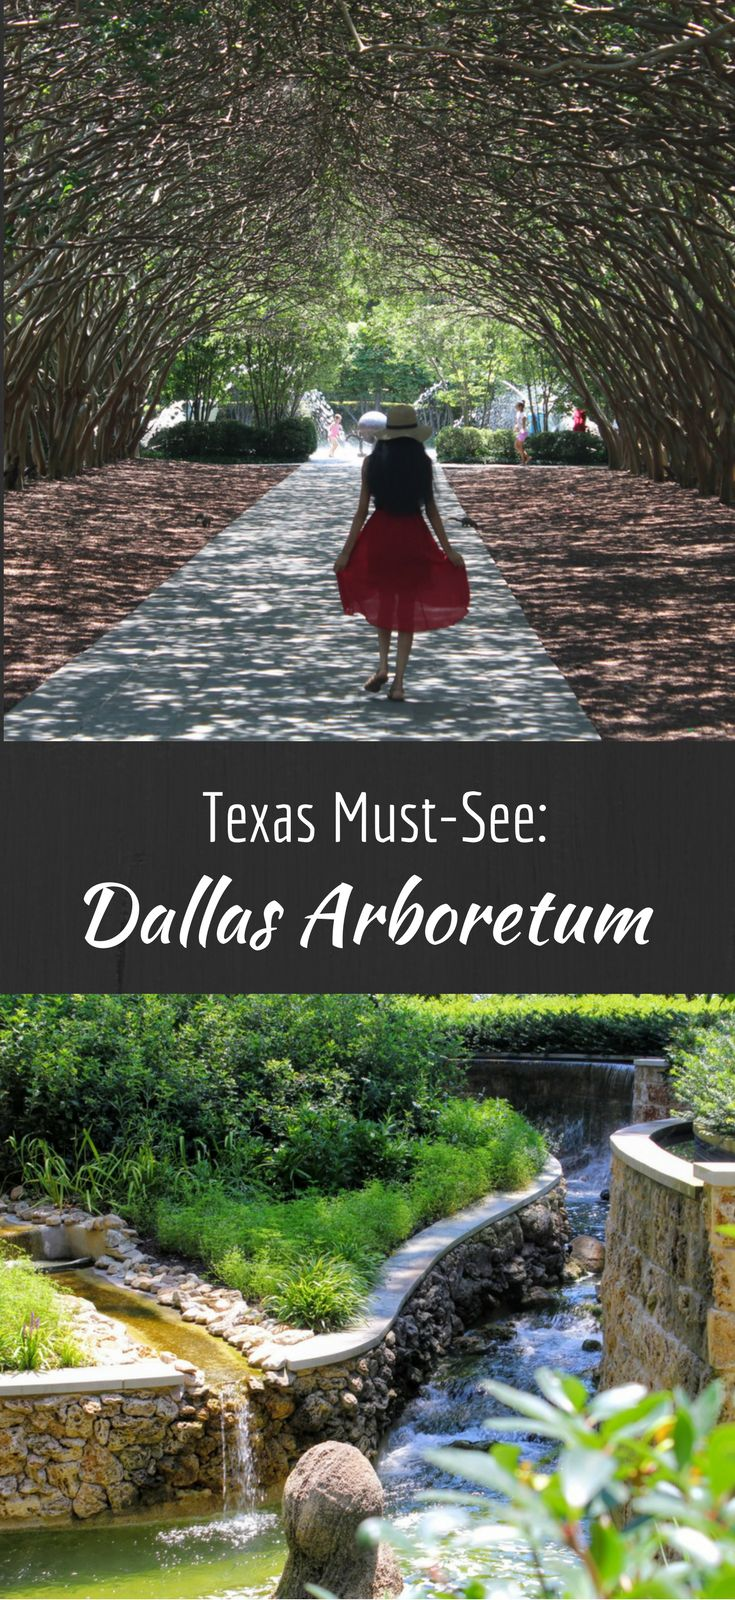 Looking for a bucket list Texas destination? The P2E team has you covered with a complete guide to the Dallas Arboretum.